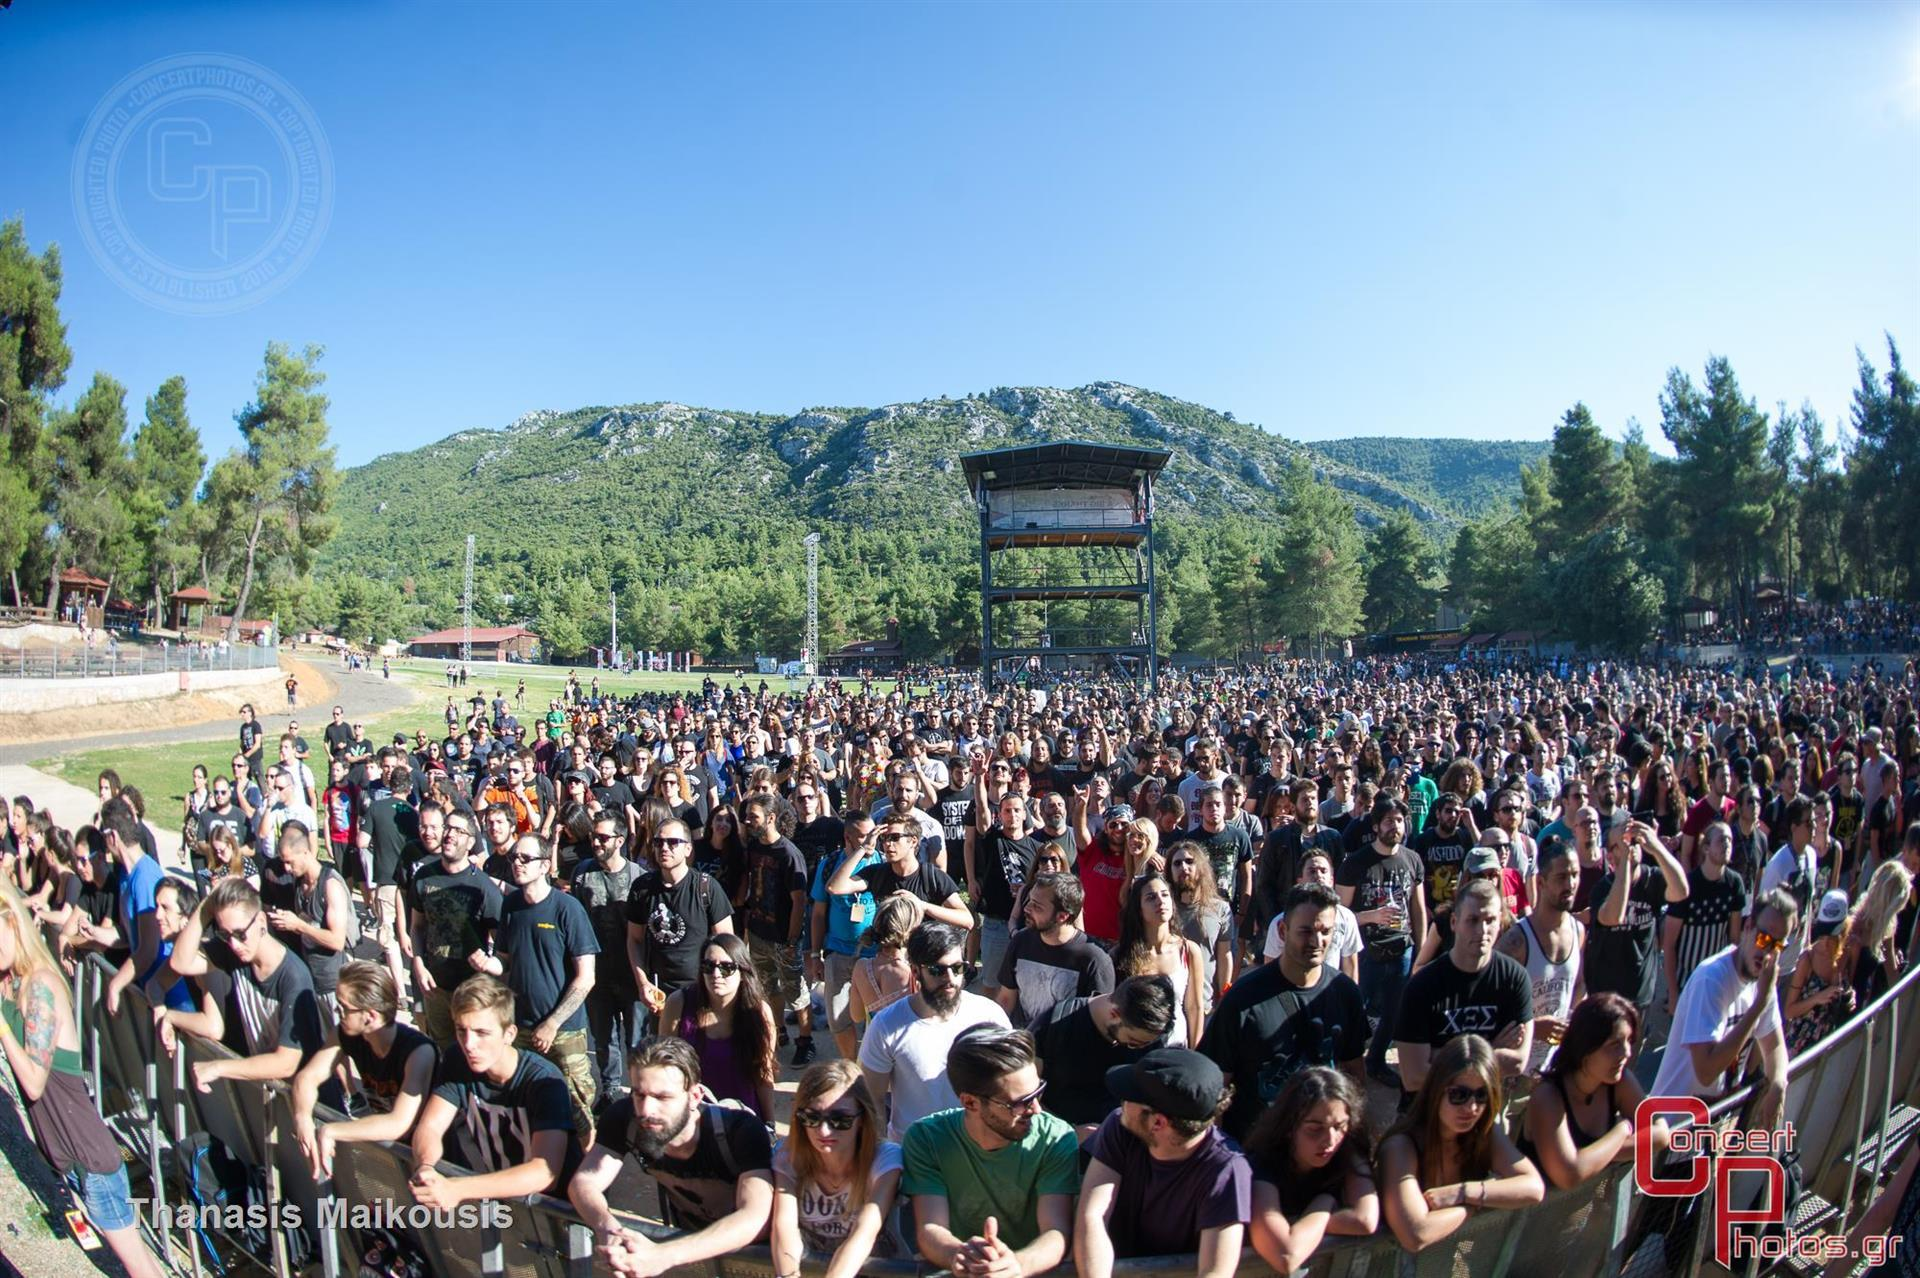 Rockwave 2015 - Day 3-Rockwave 2015 - Day 3 photographer: Thanasis Maikousis - ConcertPhotos - 20150704_1710_24